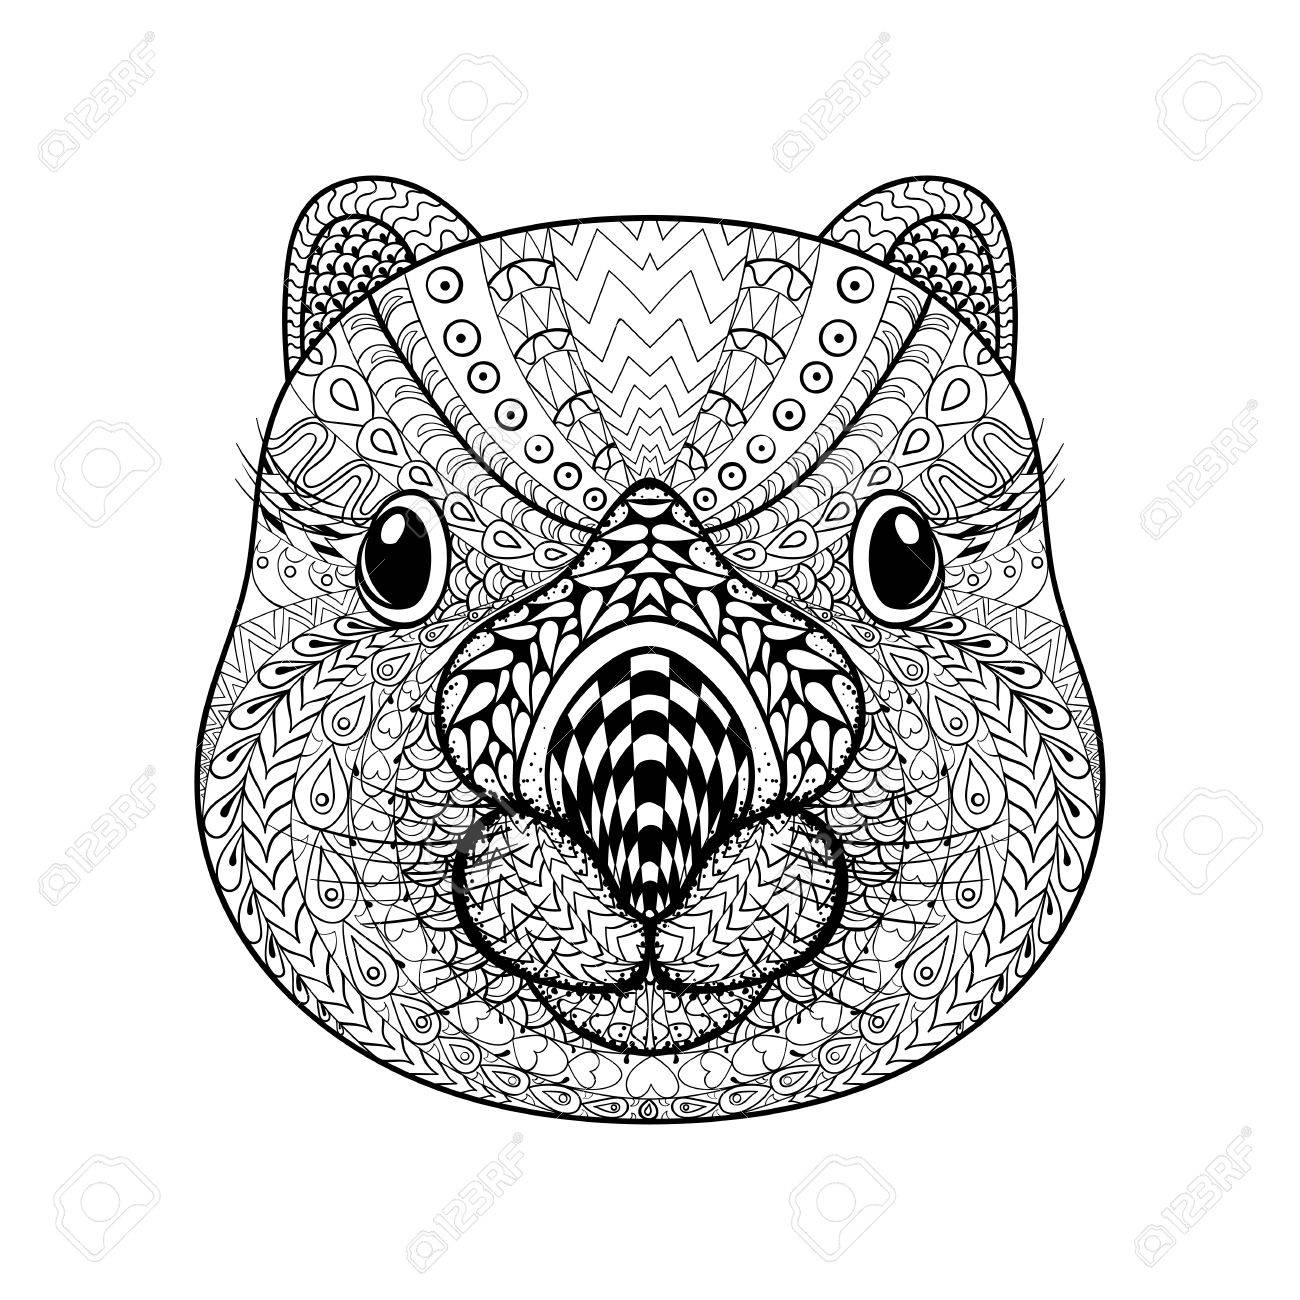 Hand Drawn Tribal Wombat Face Animal Totem For Adult Coloring Page With High Details Isolated